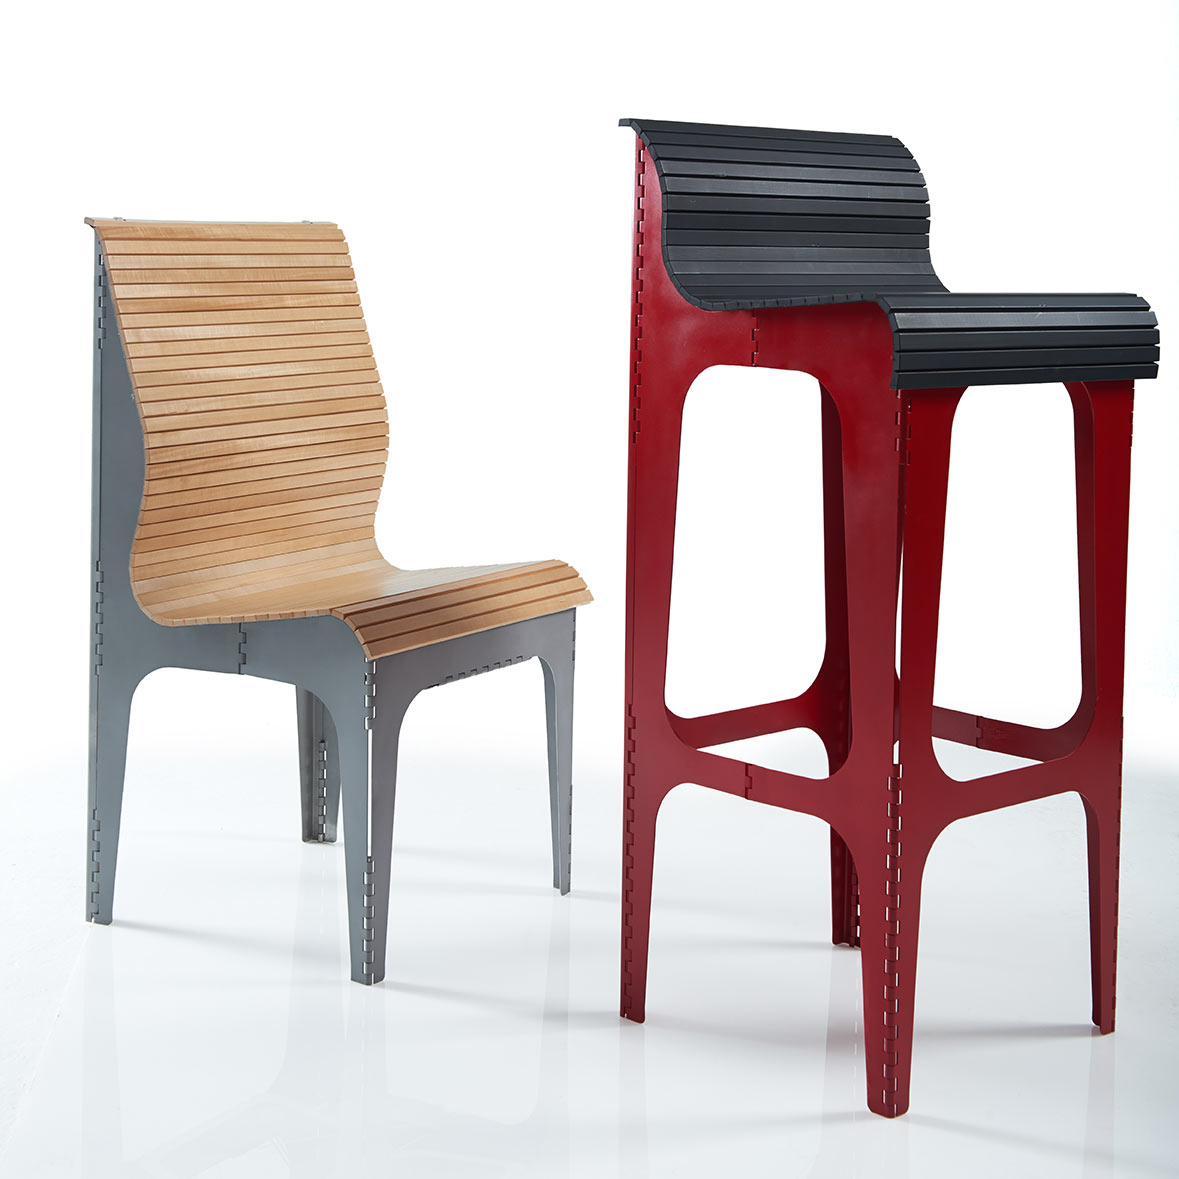 transformable-furniture-Ollie-hisheji (1)